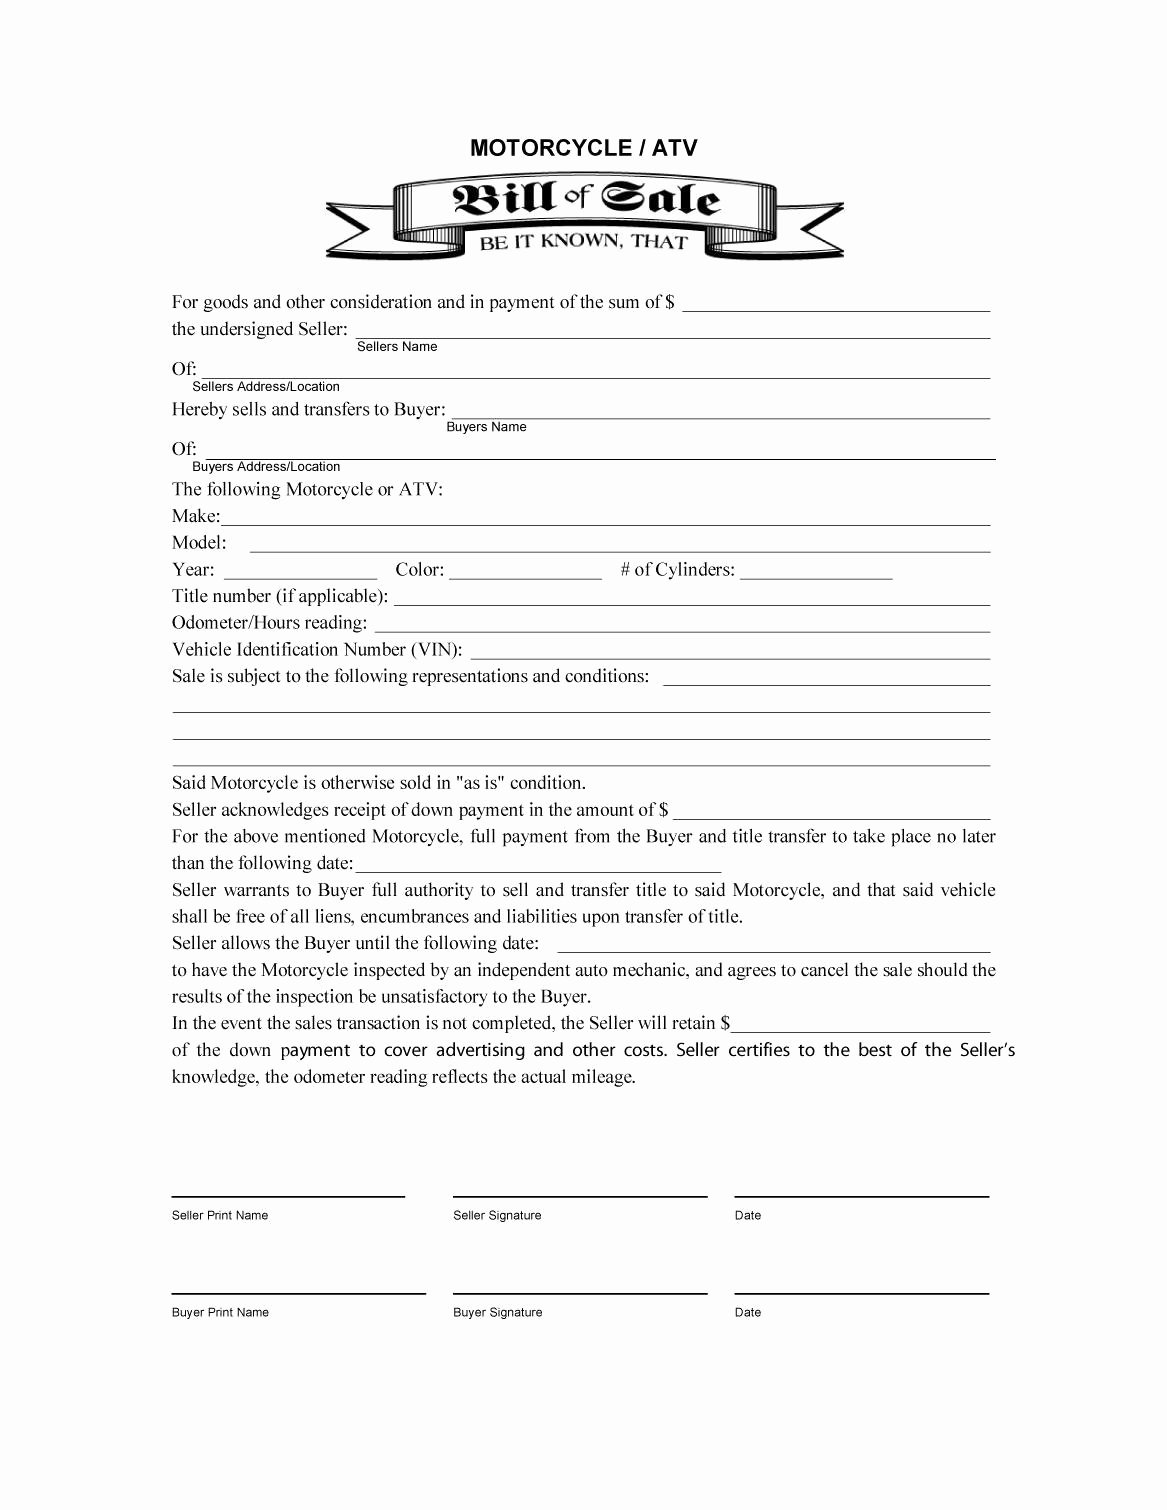 Bill Of Sale Free Unique 45 Fee Printable Bill Of Sale Templates Car Boat Gun